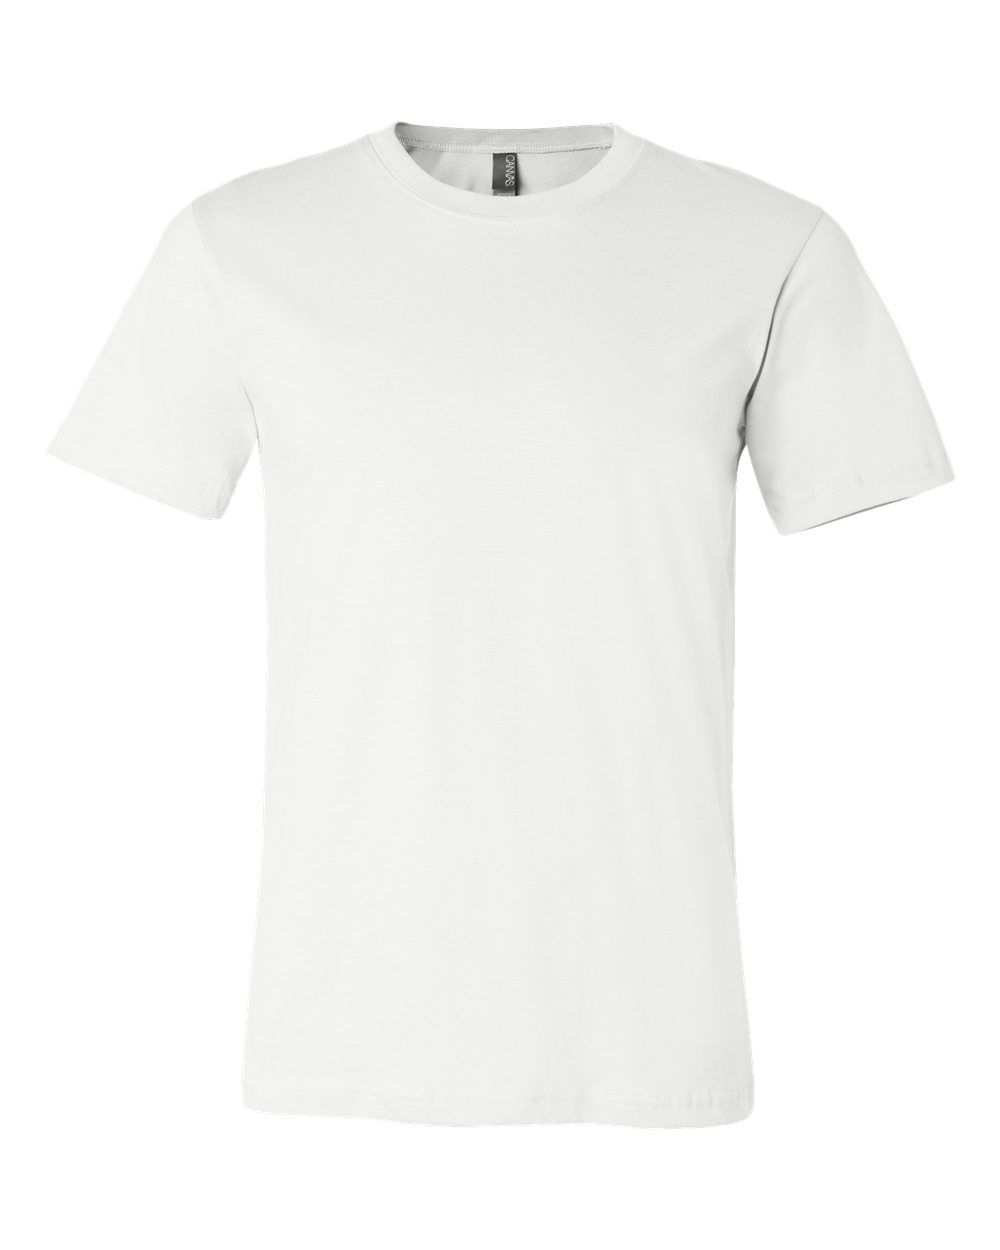 Canvas Unisex Jersey Crew Neck T-Shirt 3001-Casual Wear Plain Cotton Tee Bella